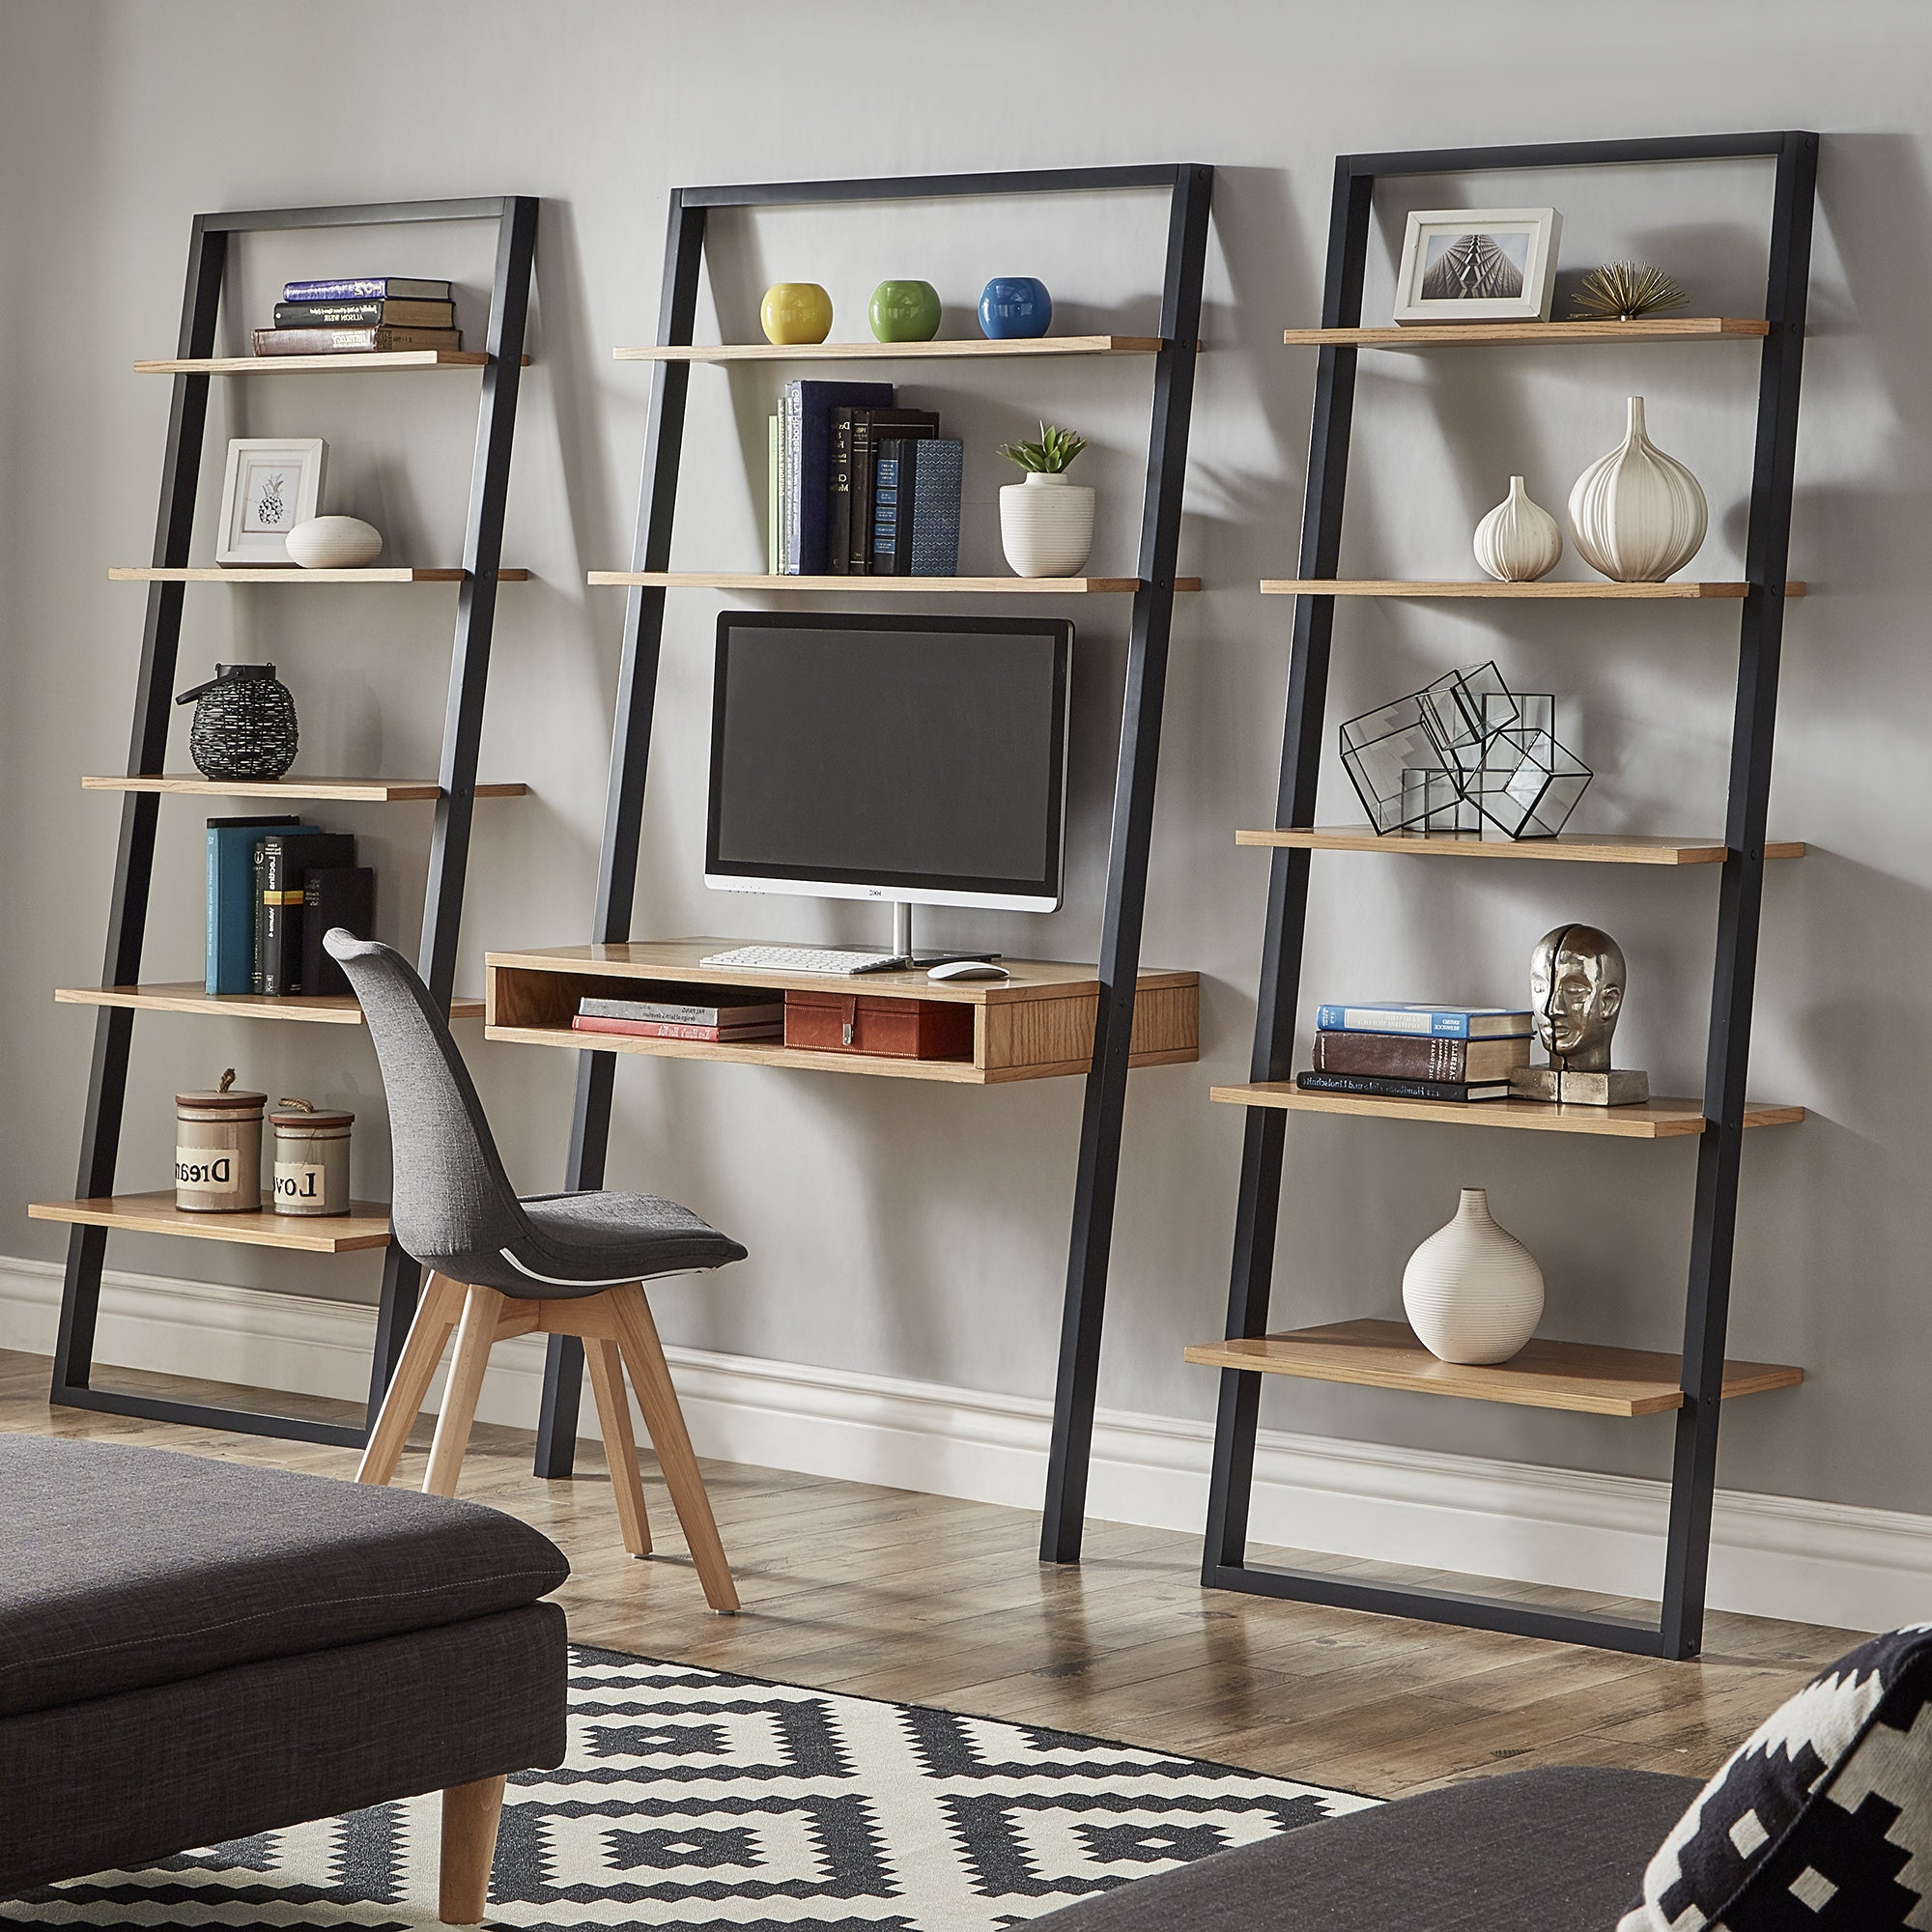 Widely Used Ranell Leaning Desk Ladder Shelvesinspire Q Modern Throughout Almanzar Ladder Bookcases (View 14 of 20)